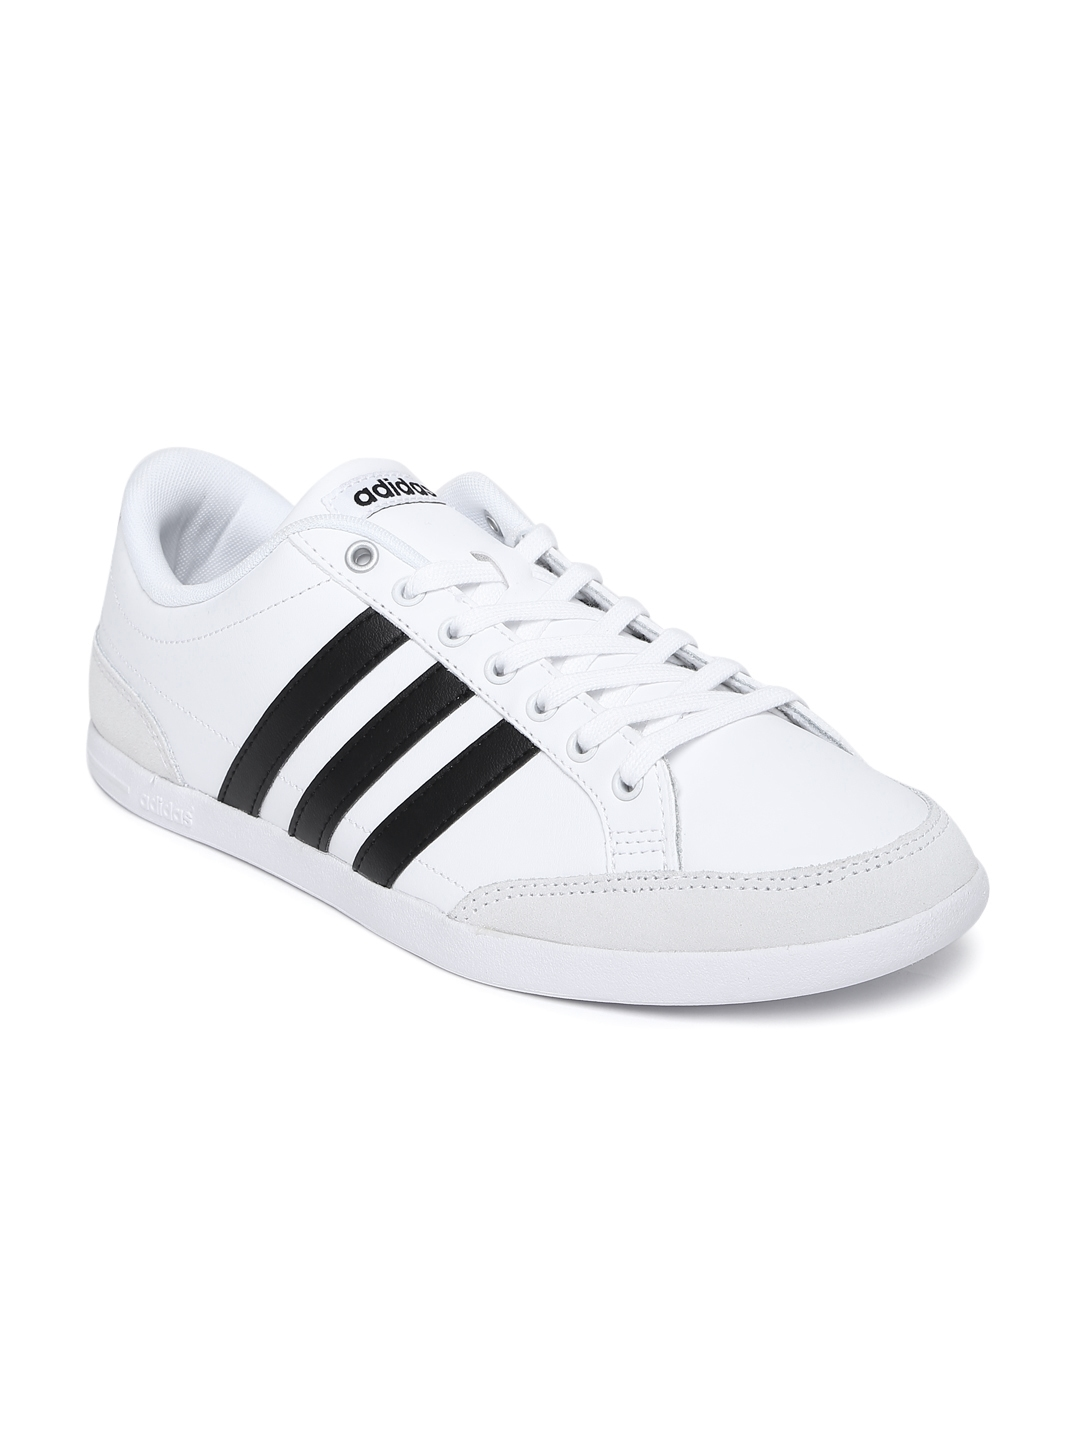 quality design 5033c 9a99c ADIDAS NEO Men White Solid Leather Caflaire Sneakers